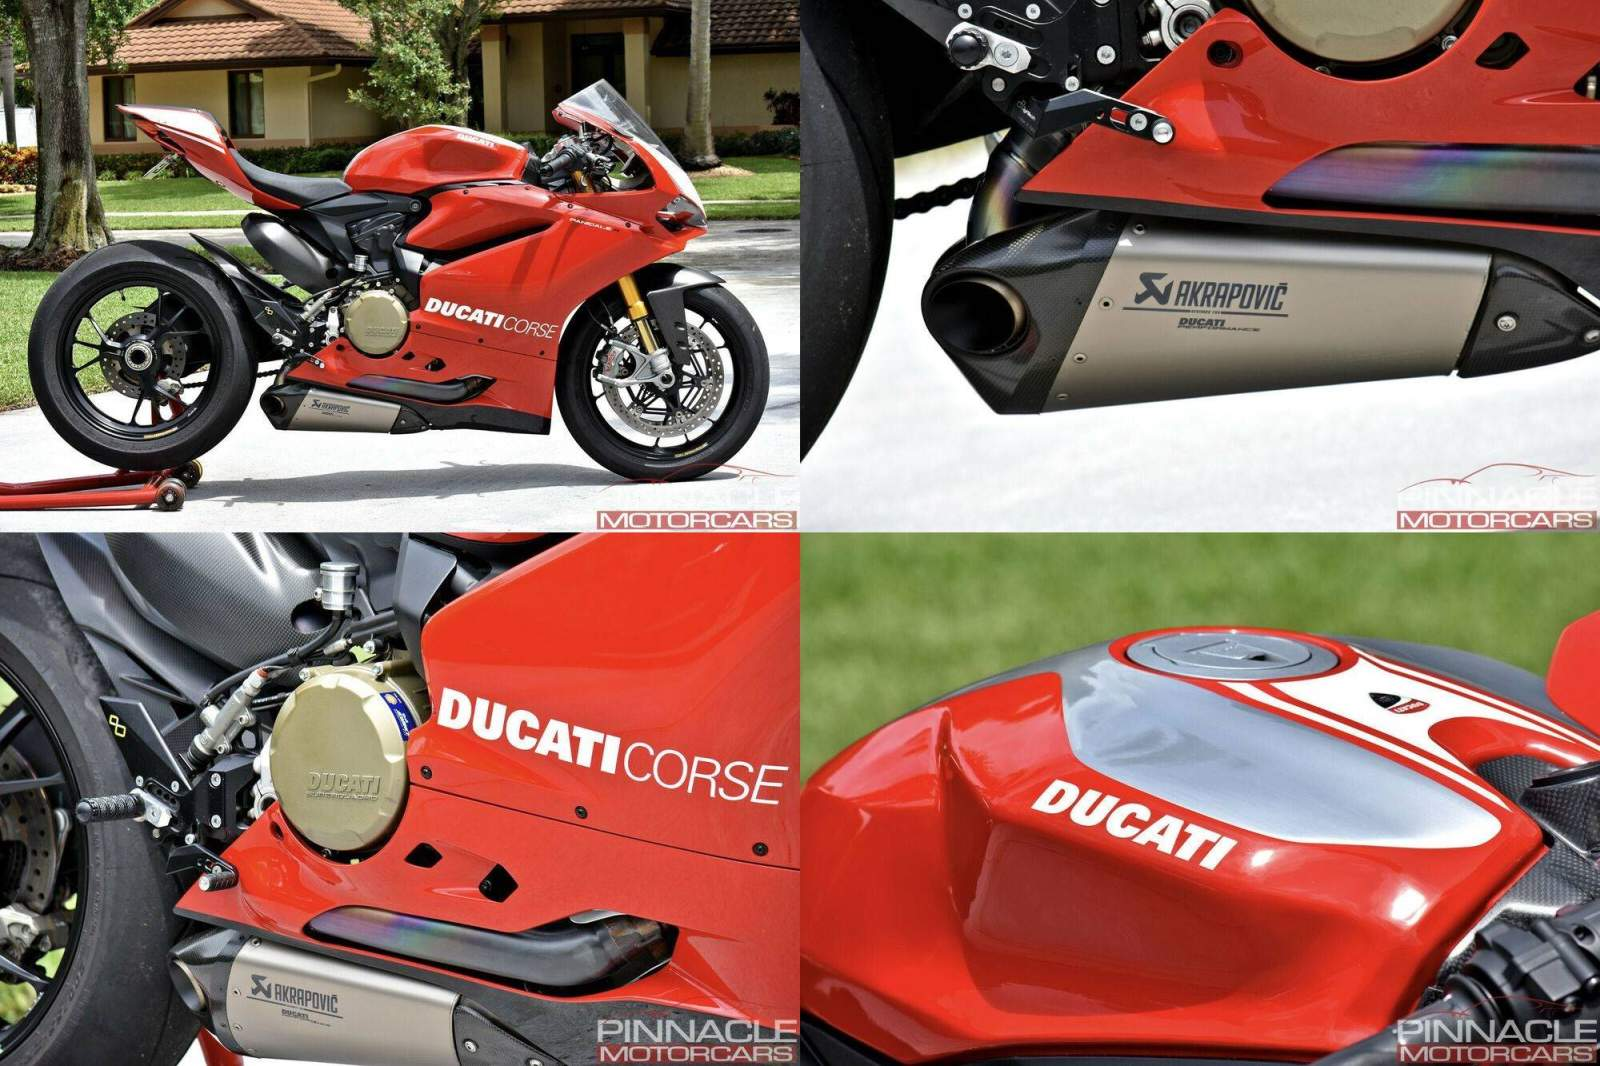 2015 Ducati Superbike Other used for sale